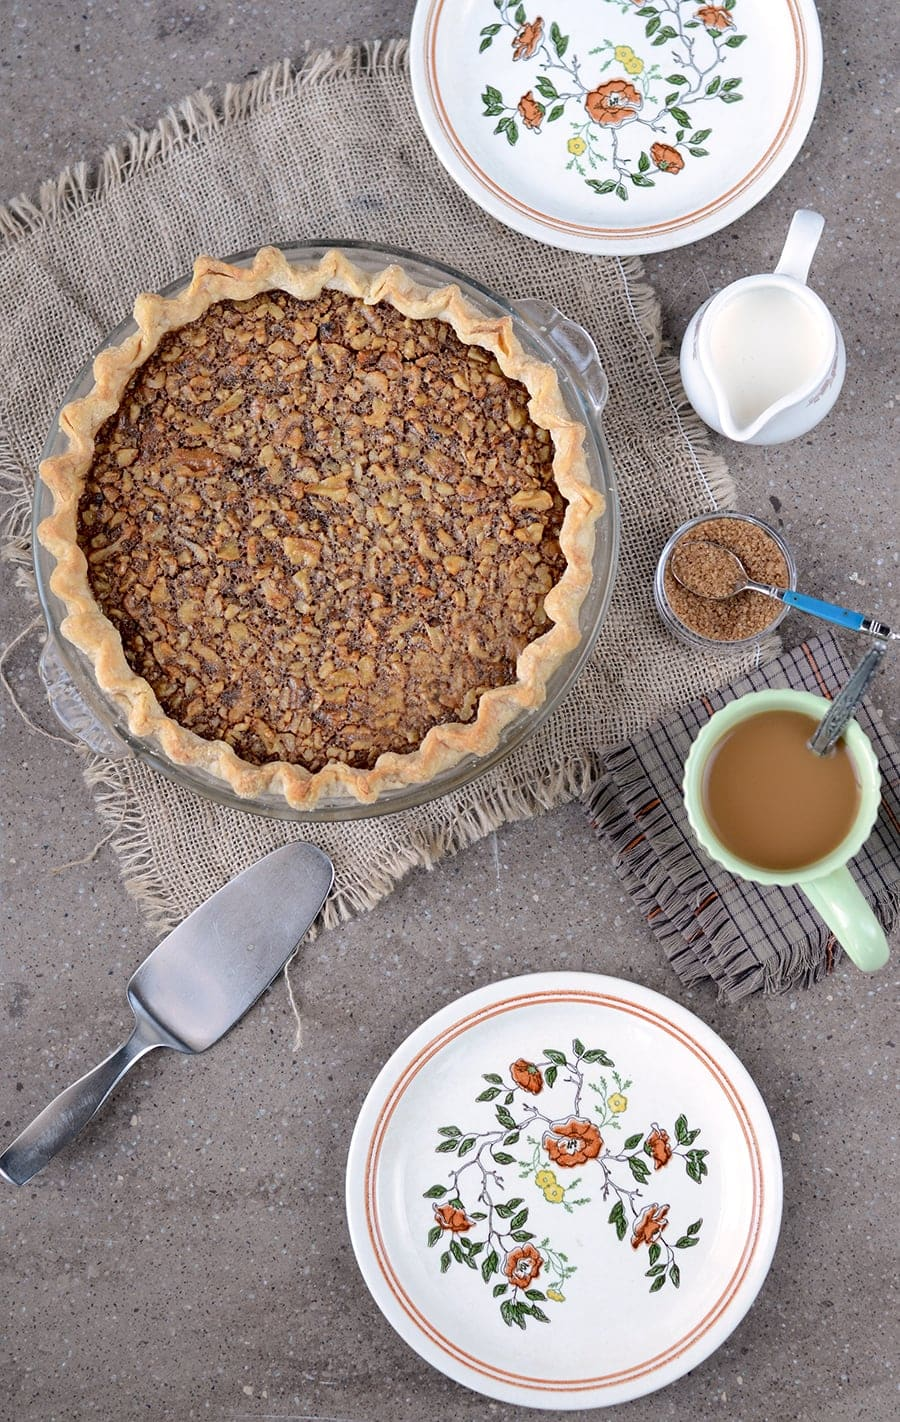 You'll love this alternative to pecan pie, Maple Walnut Pie! There's no corn syrup, but there's real maple syrup and a hint of whiskey to spice things up!